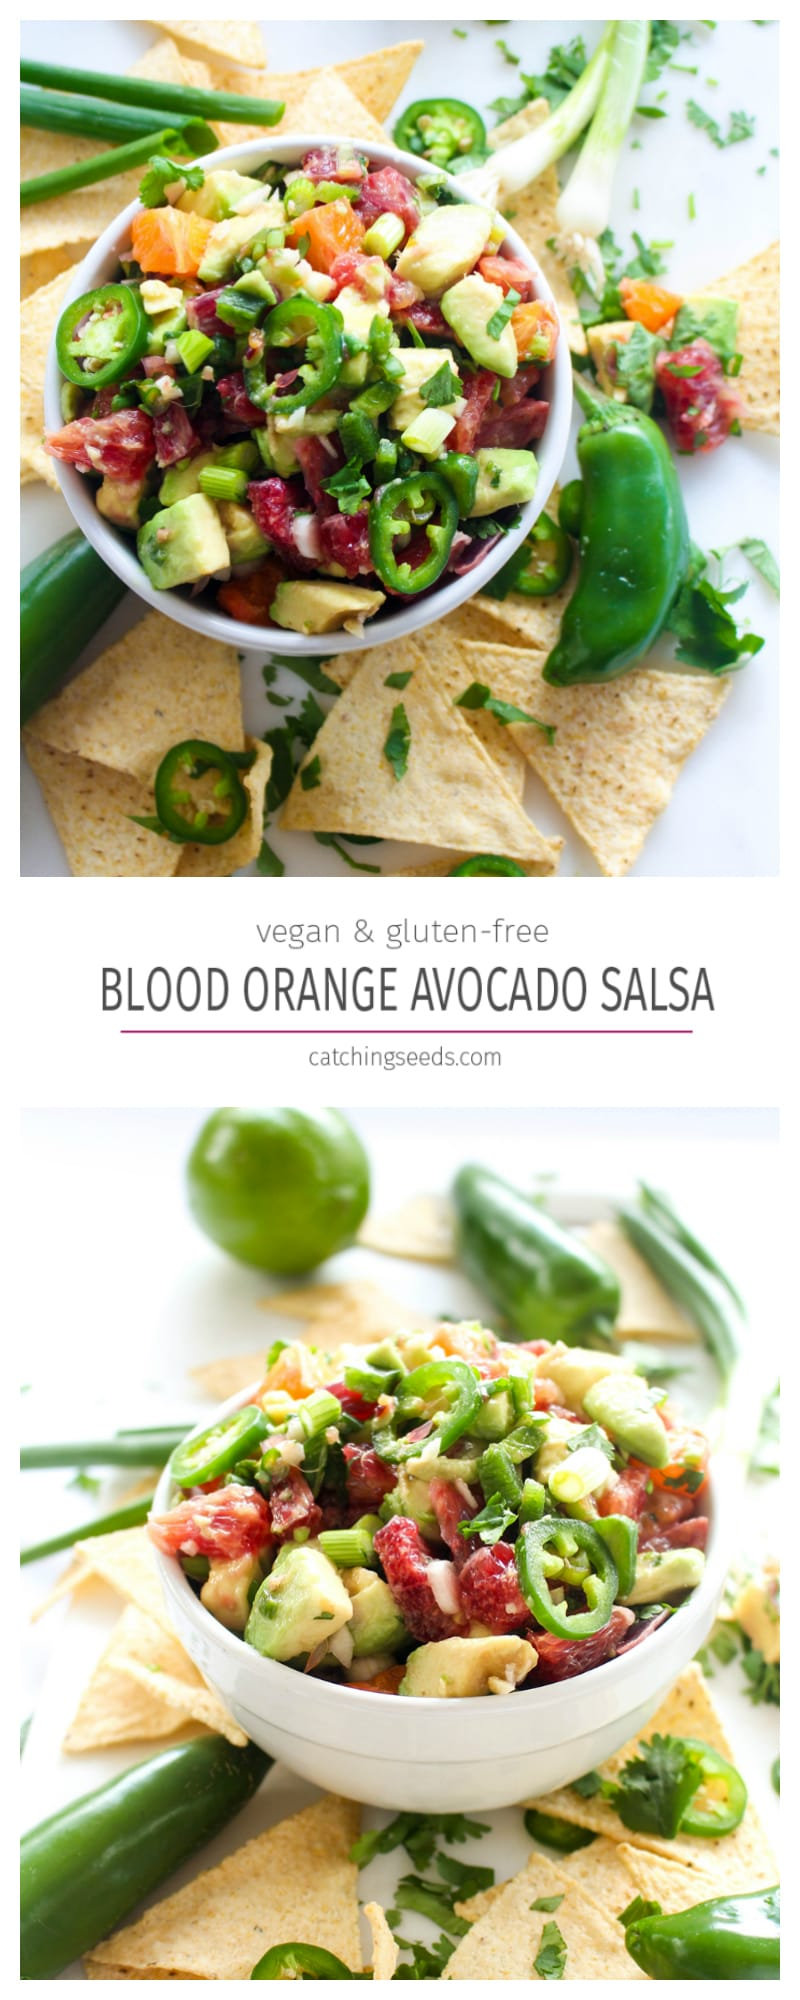 An exciting spin on salsa! Rich flavors of blood orange and creamy avocado make for one killer salsa recipe.